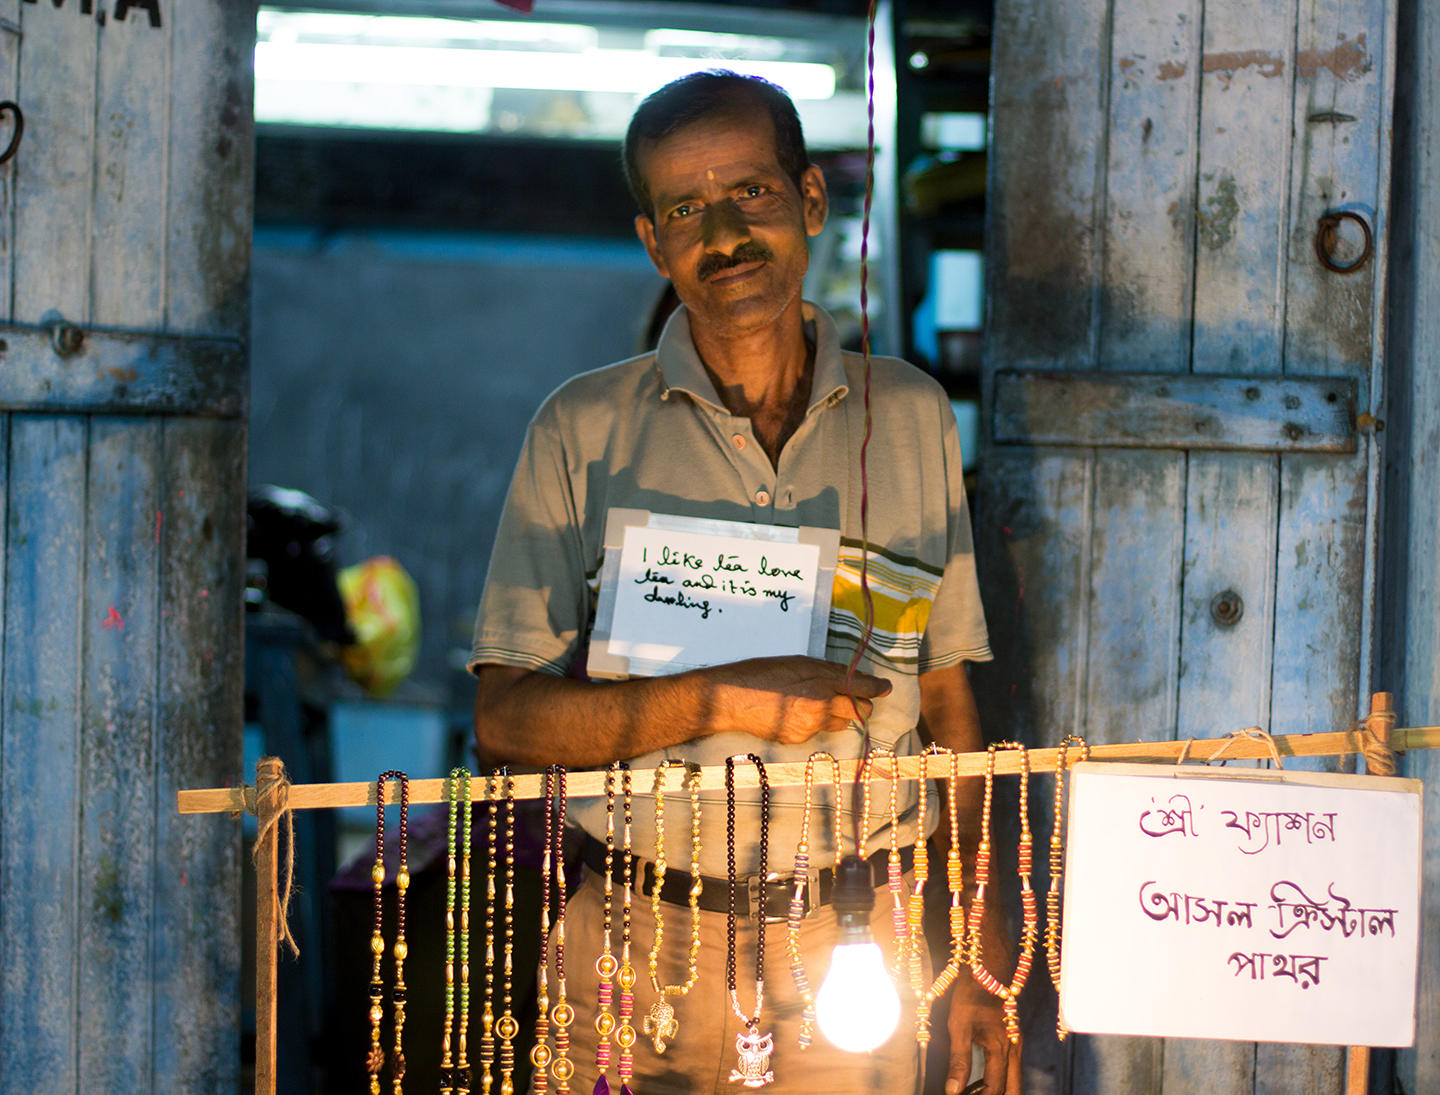 Subankha sells jewelry made by his wife in Kolkata's Kalighat Market. He also writes stories that he self publishes as hard cover books. Chai gives him energy and inspiration.